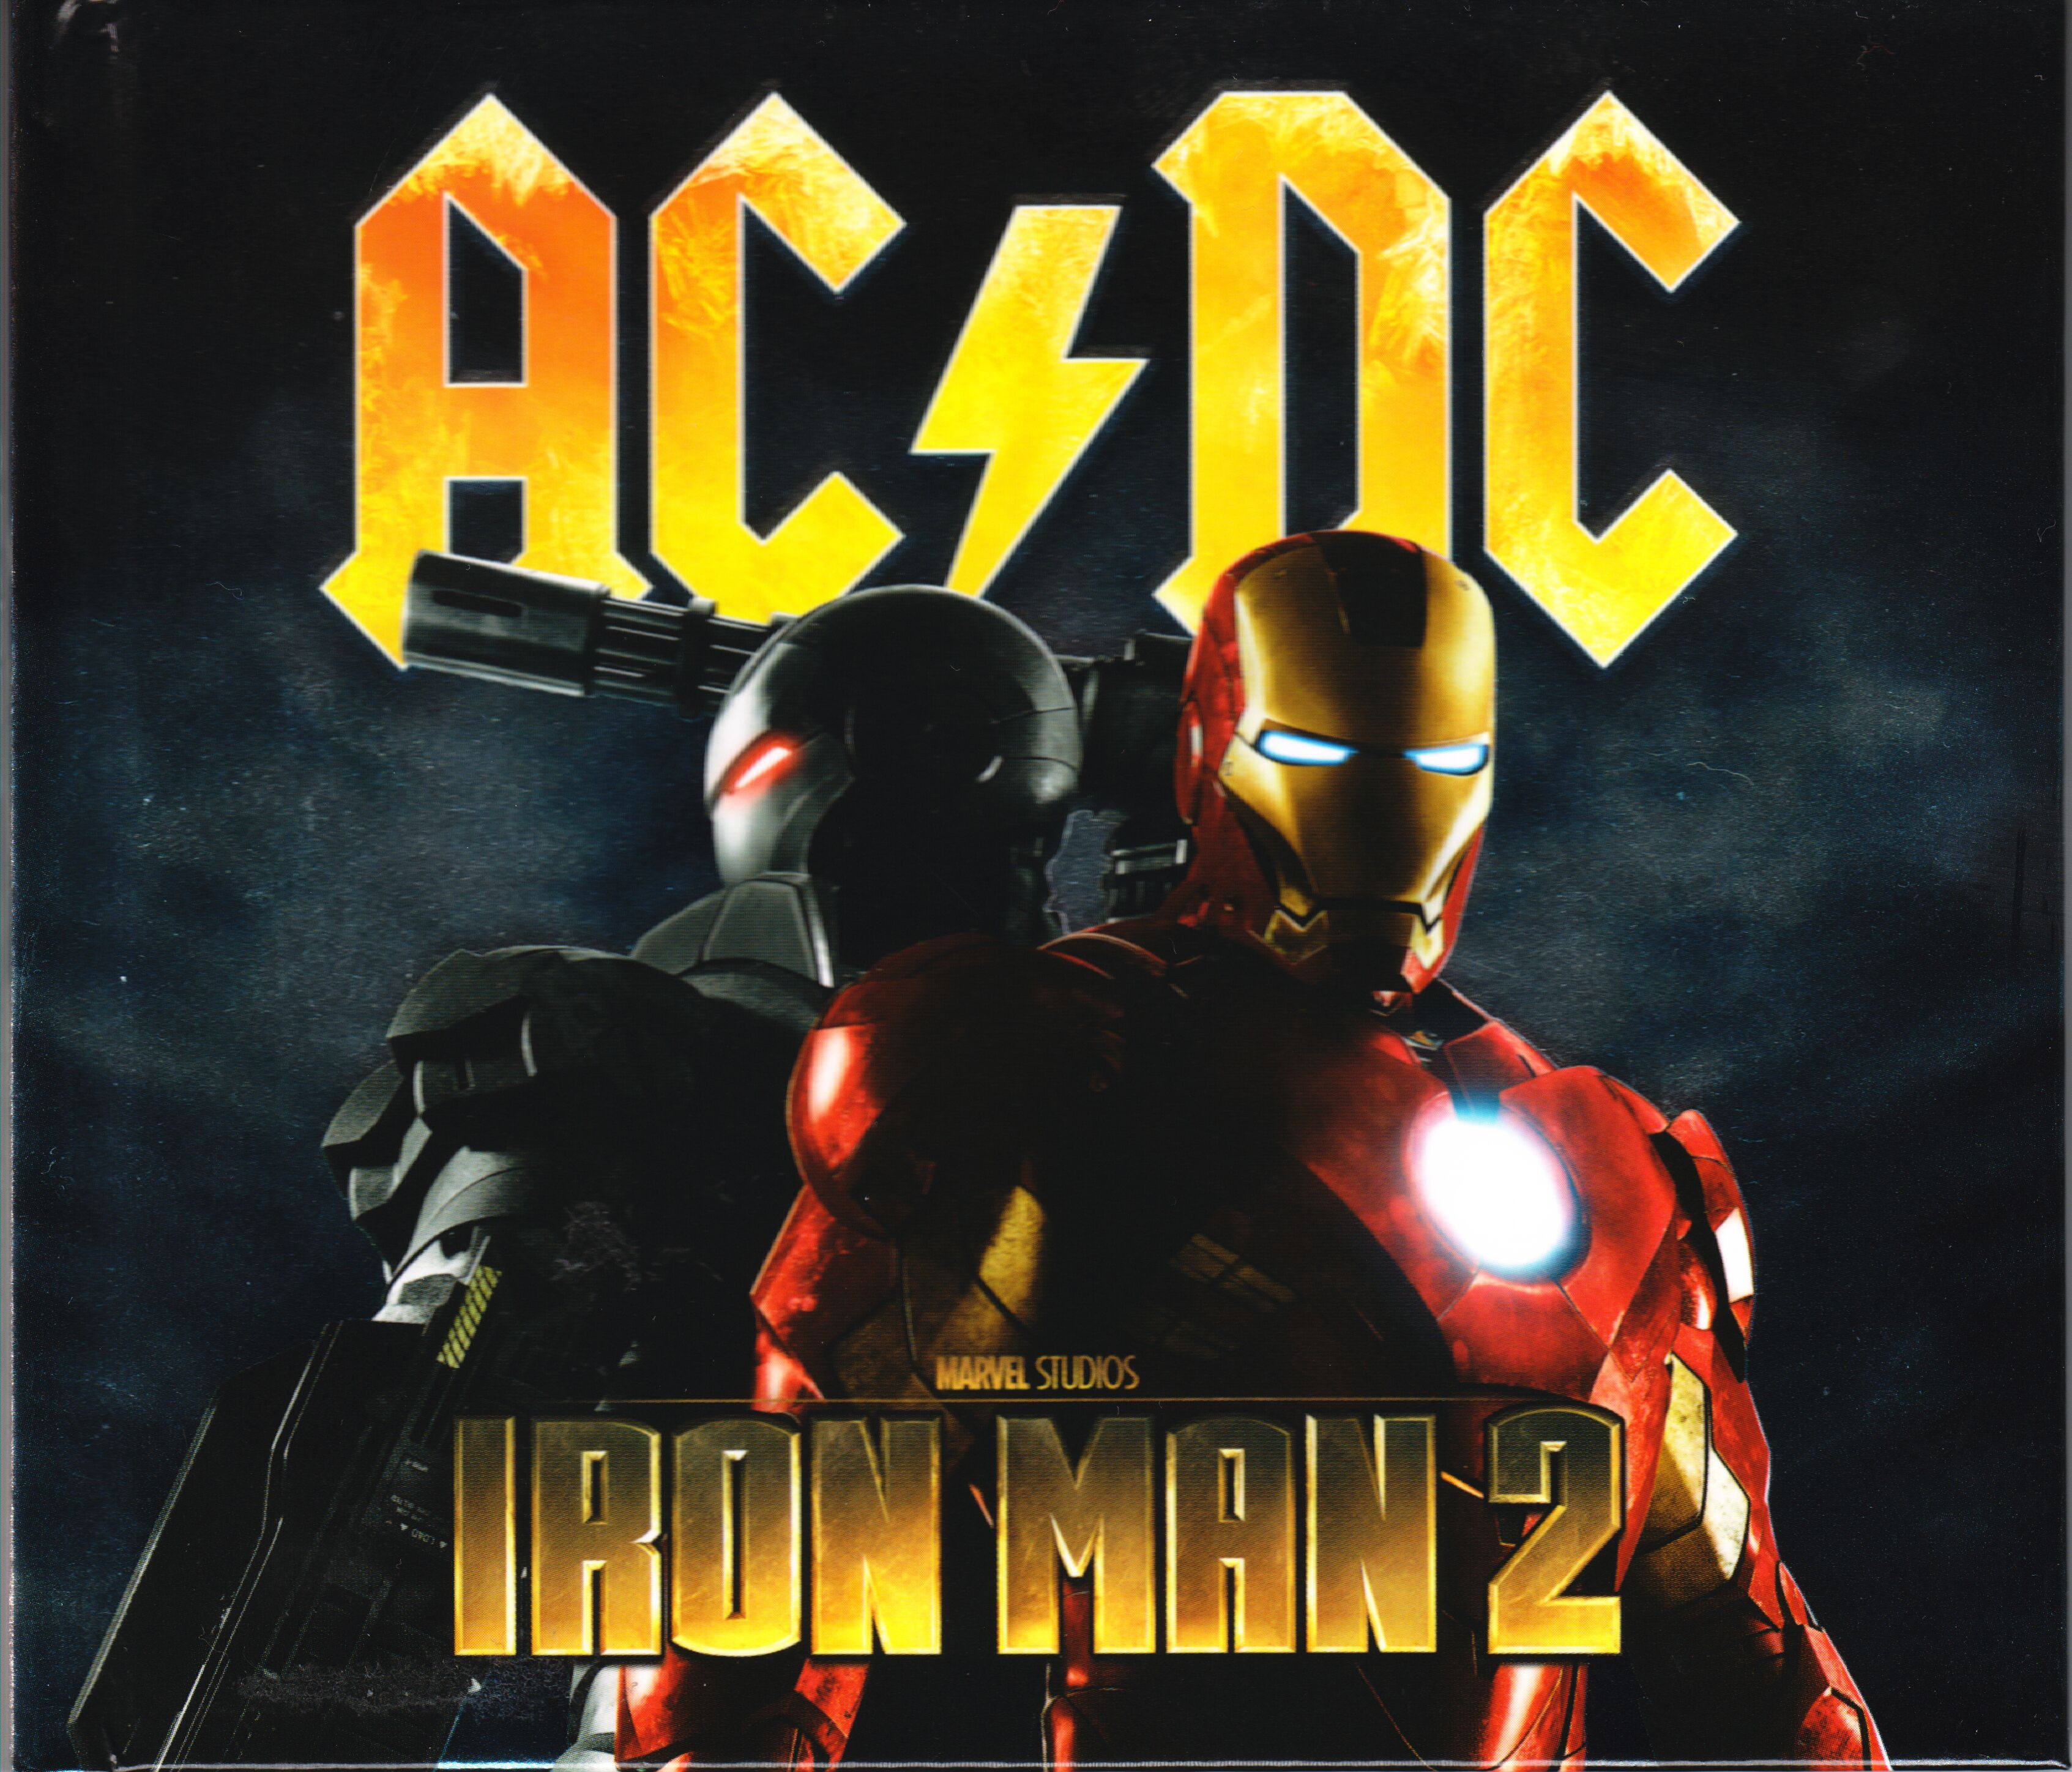 AC/DC - Iron Man 2 album cover